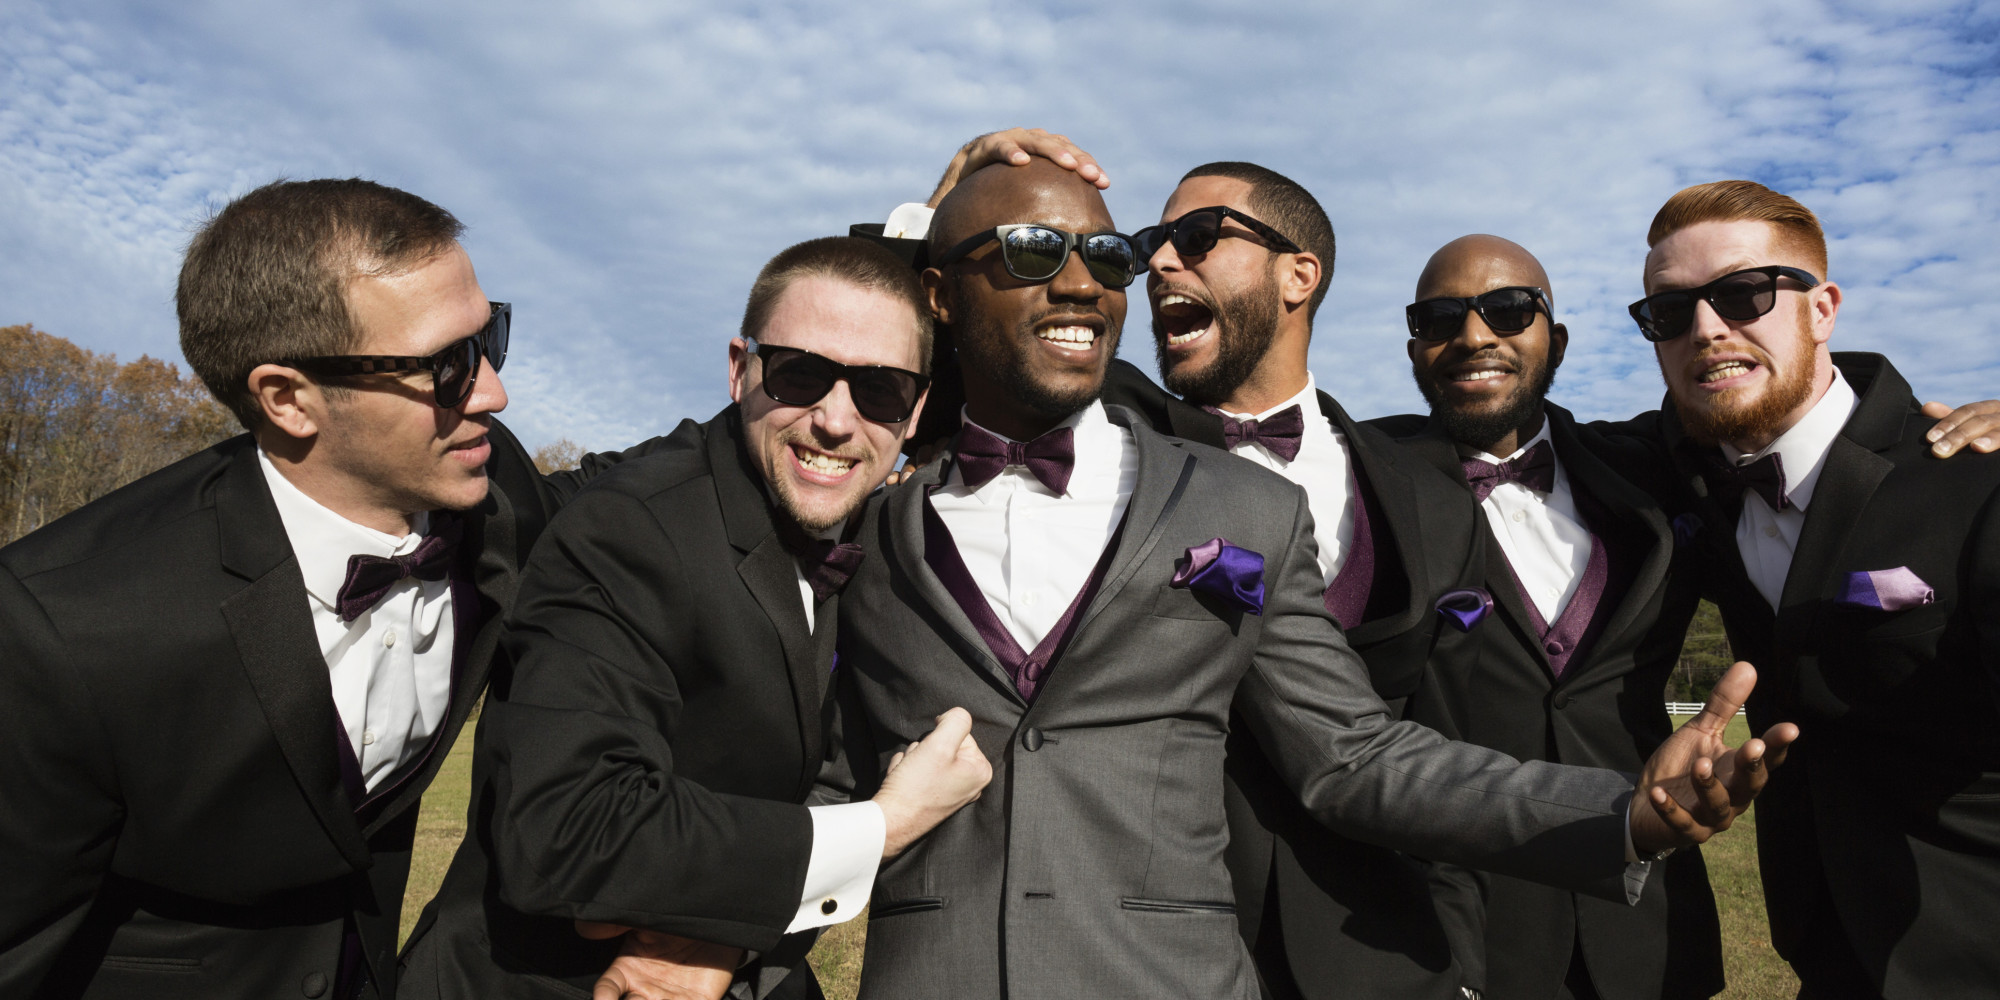 Good Wedding Party Gifts For Groomsmen: 5 Fun And Easy Groomsmen Gifts For Your Big Day